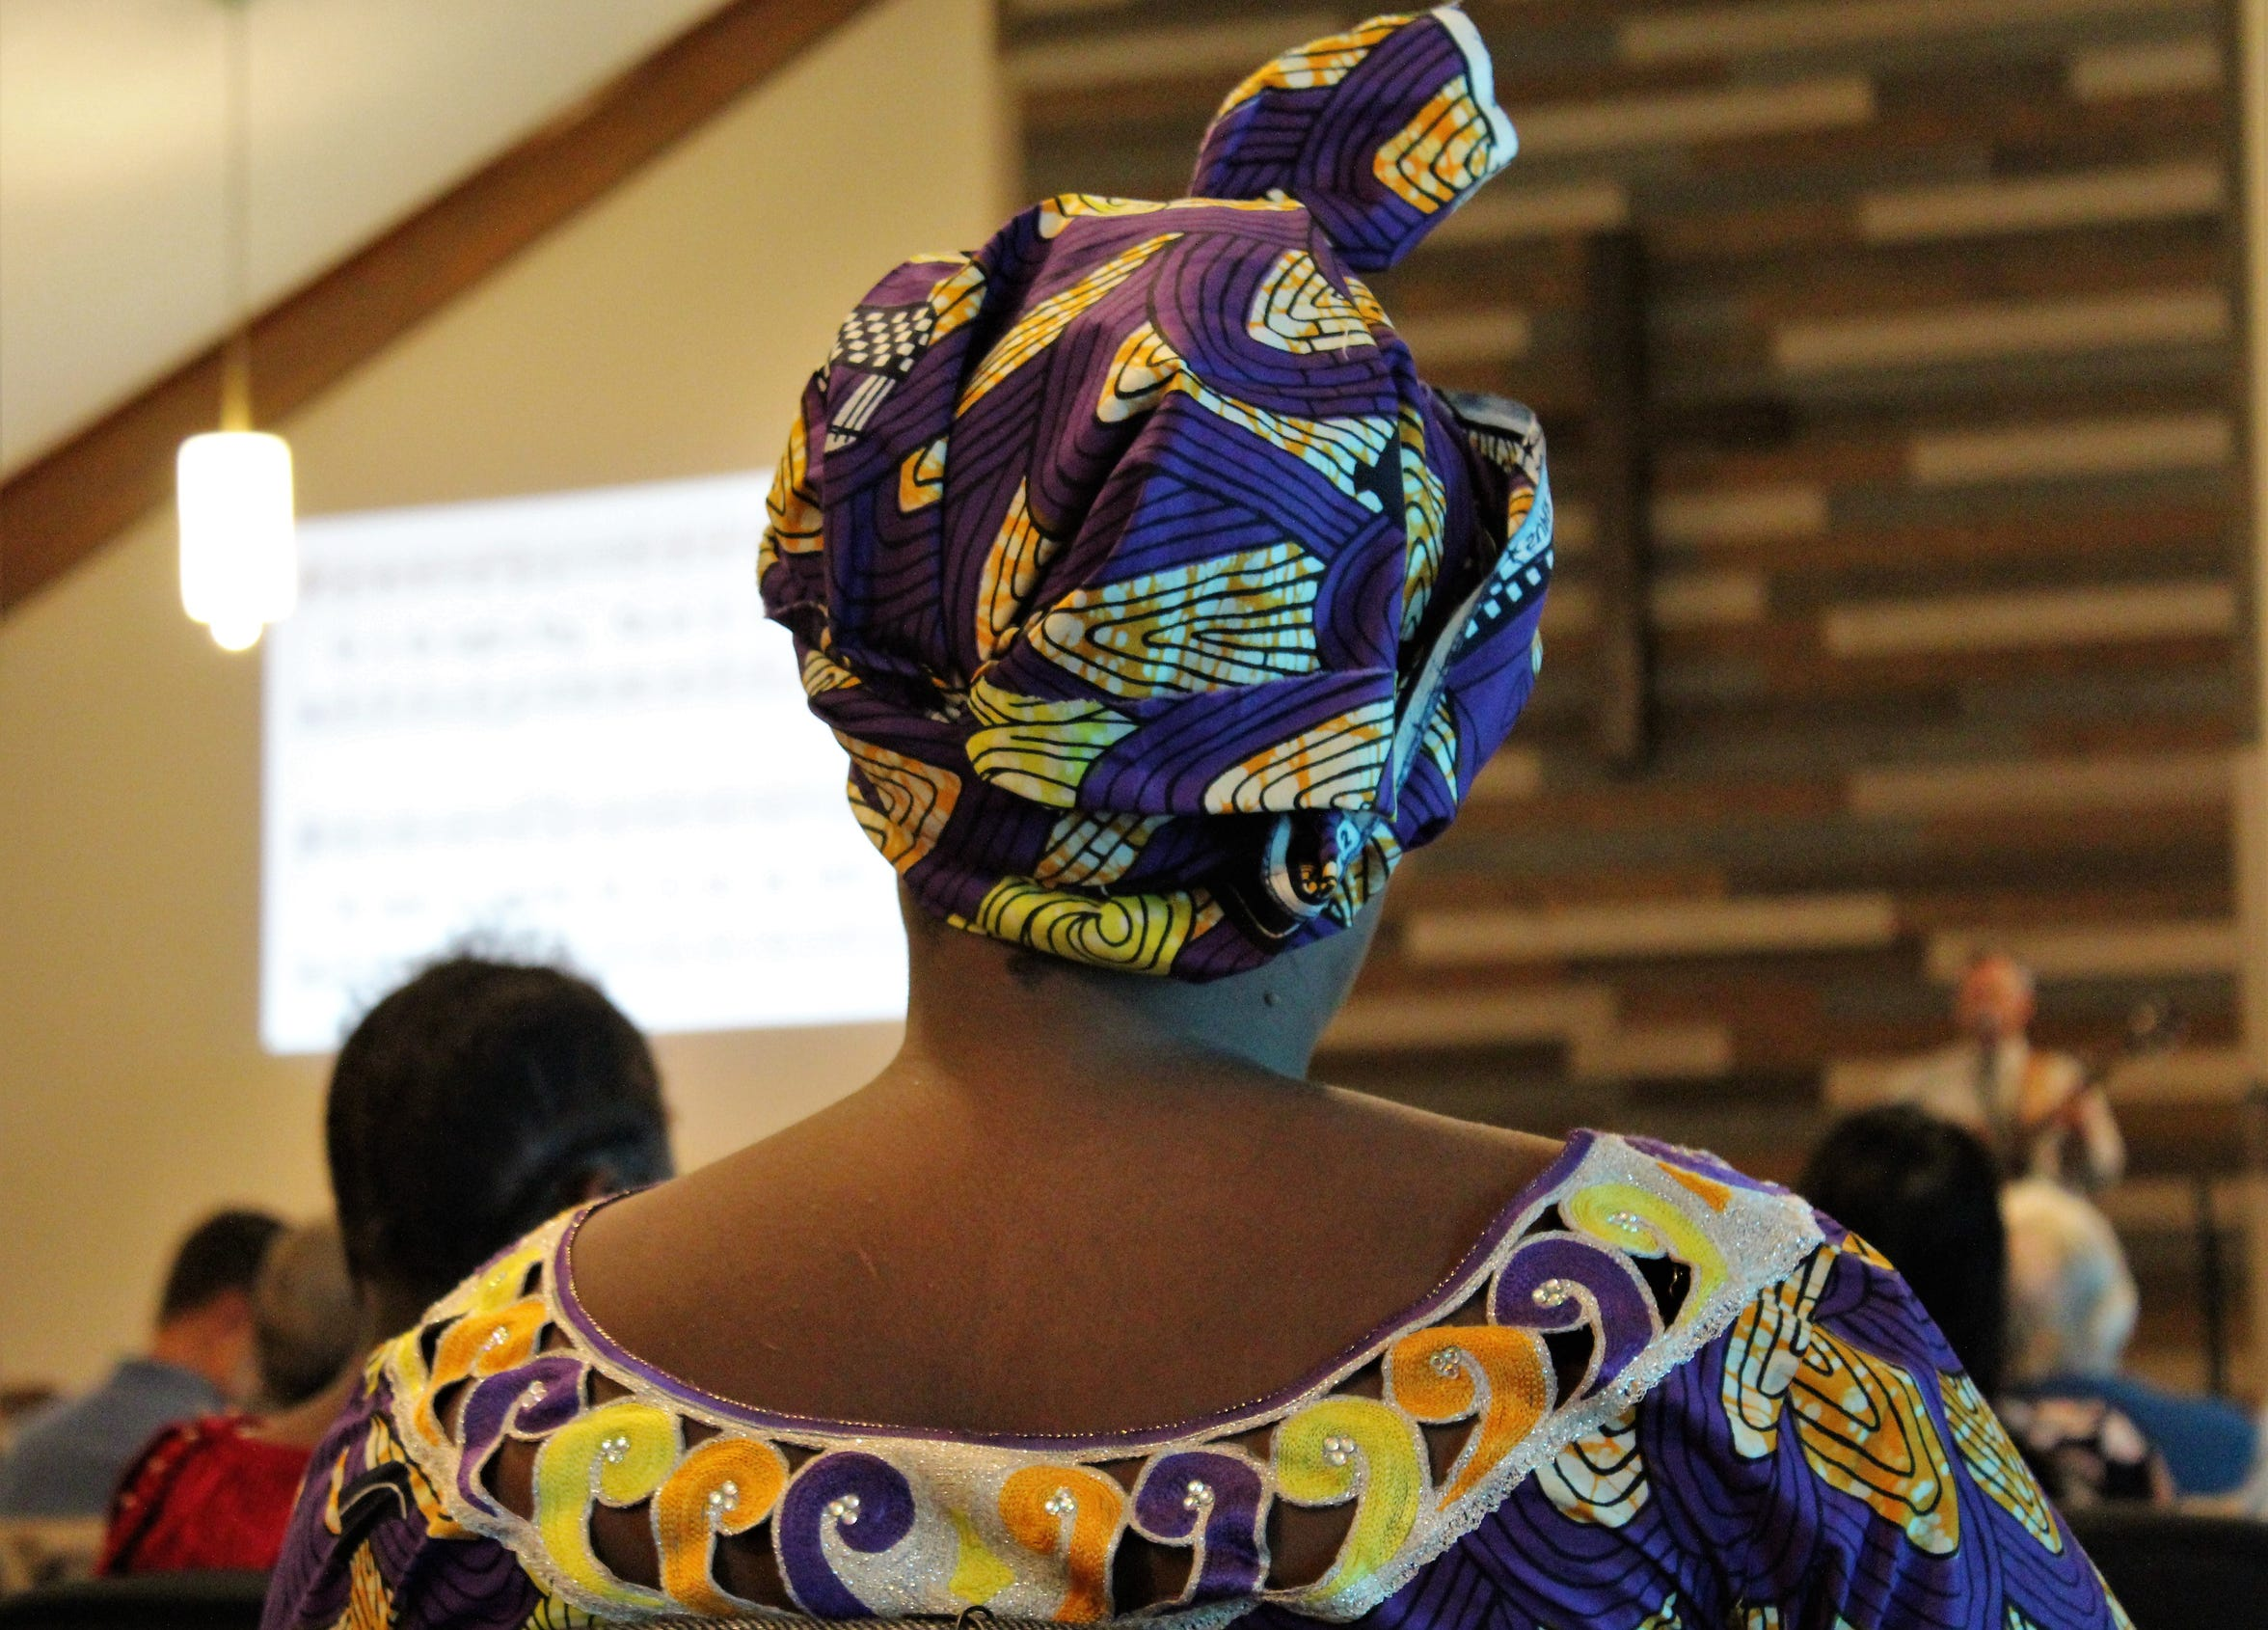 A woman in native dress attends an Elmcrest Baptist Church service Oct. 6. The church prints its bulletin in English, Swahili and French to be accessible to its congregation.